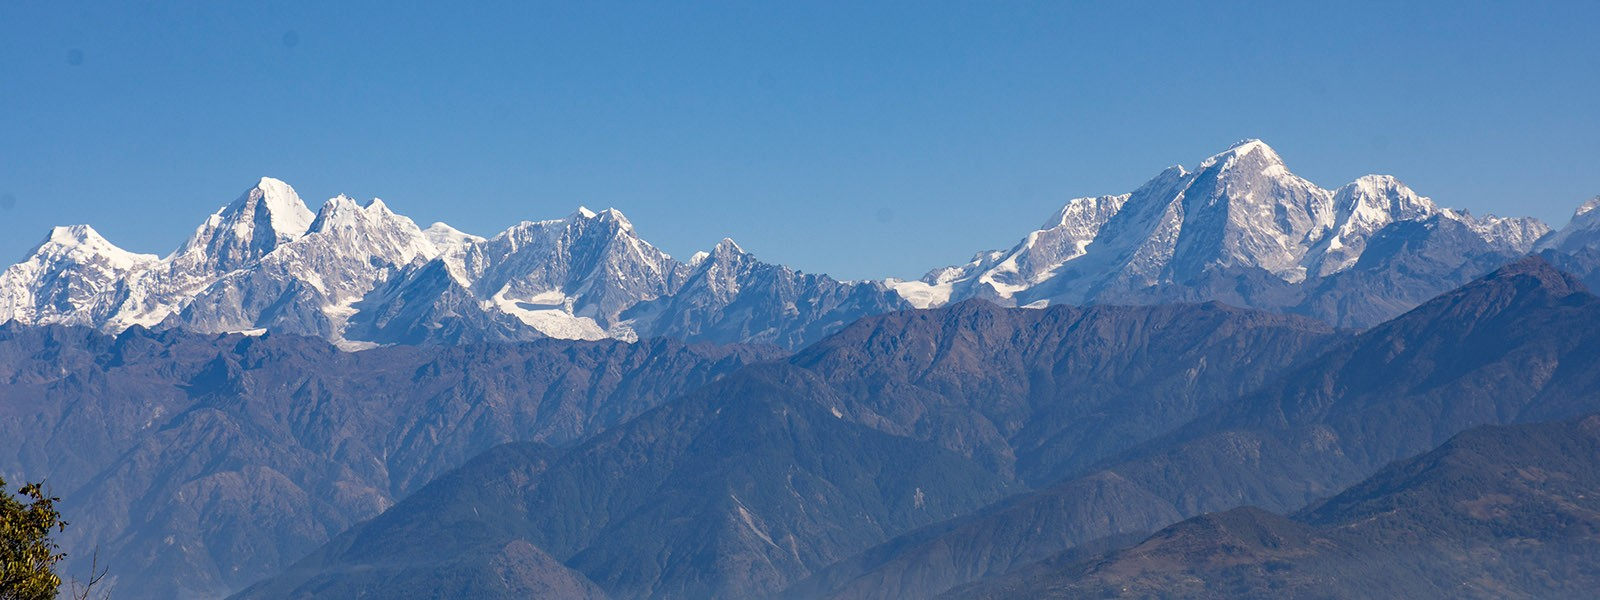 Day Trip in Nepal - Mountain view from Nagarkot Hill